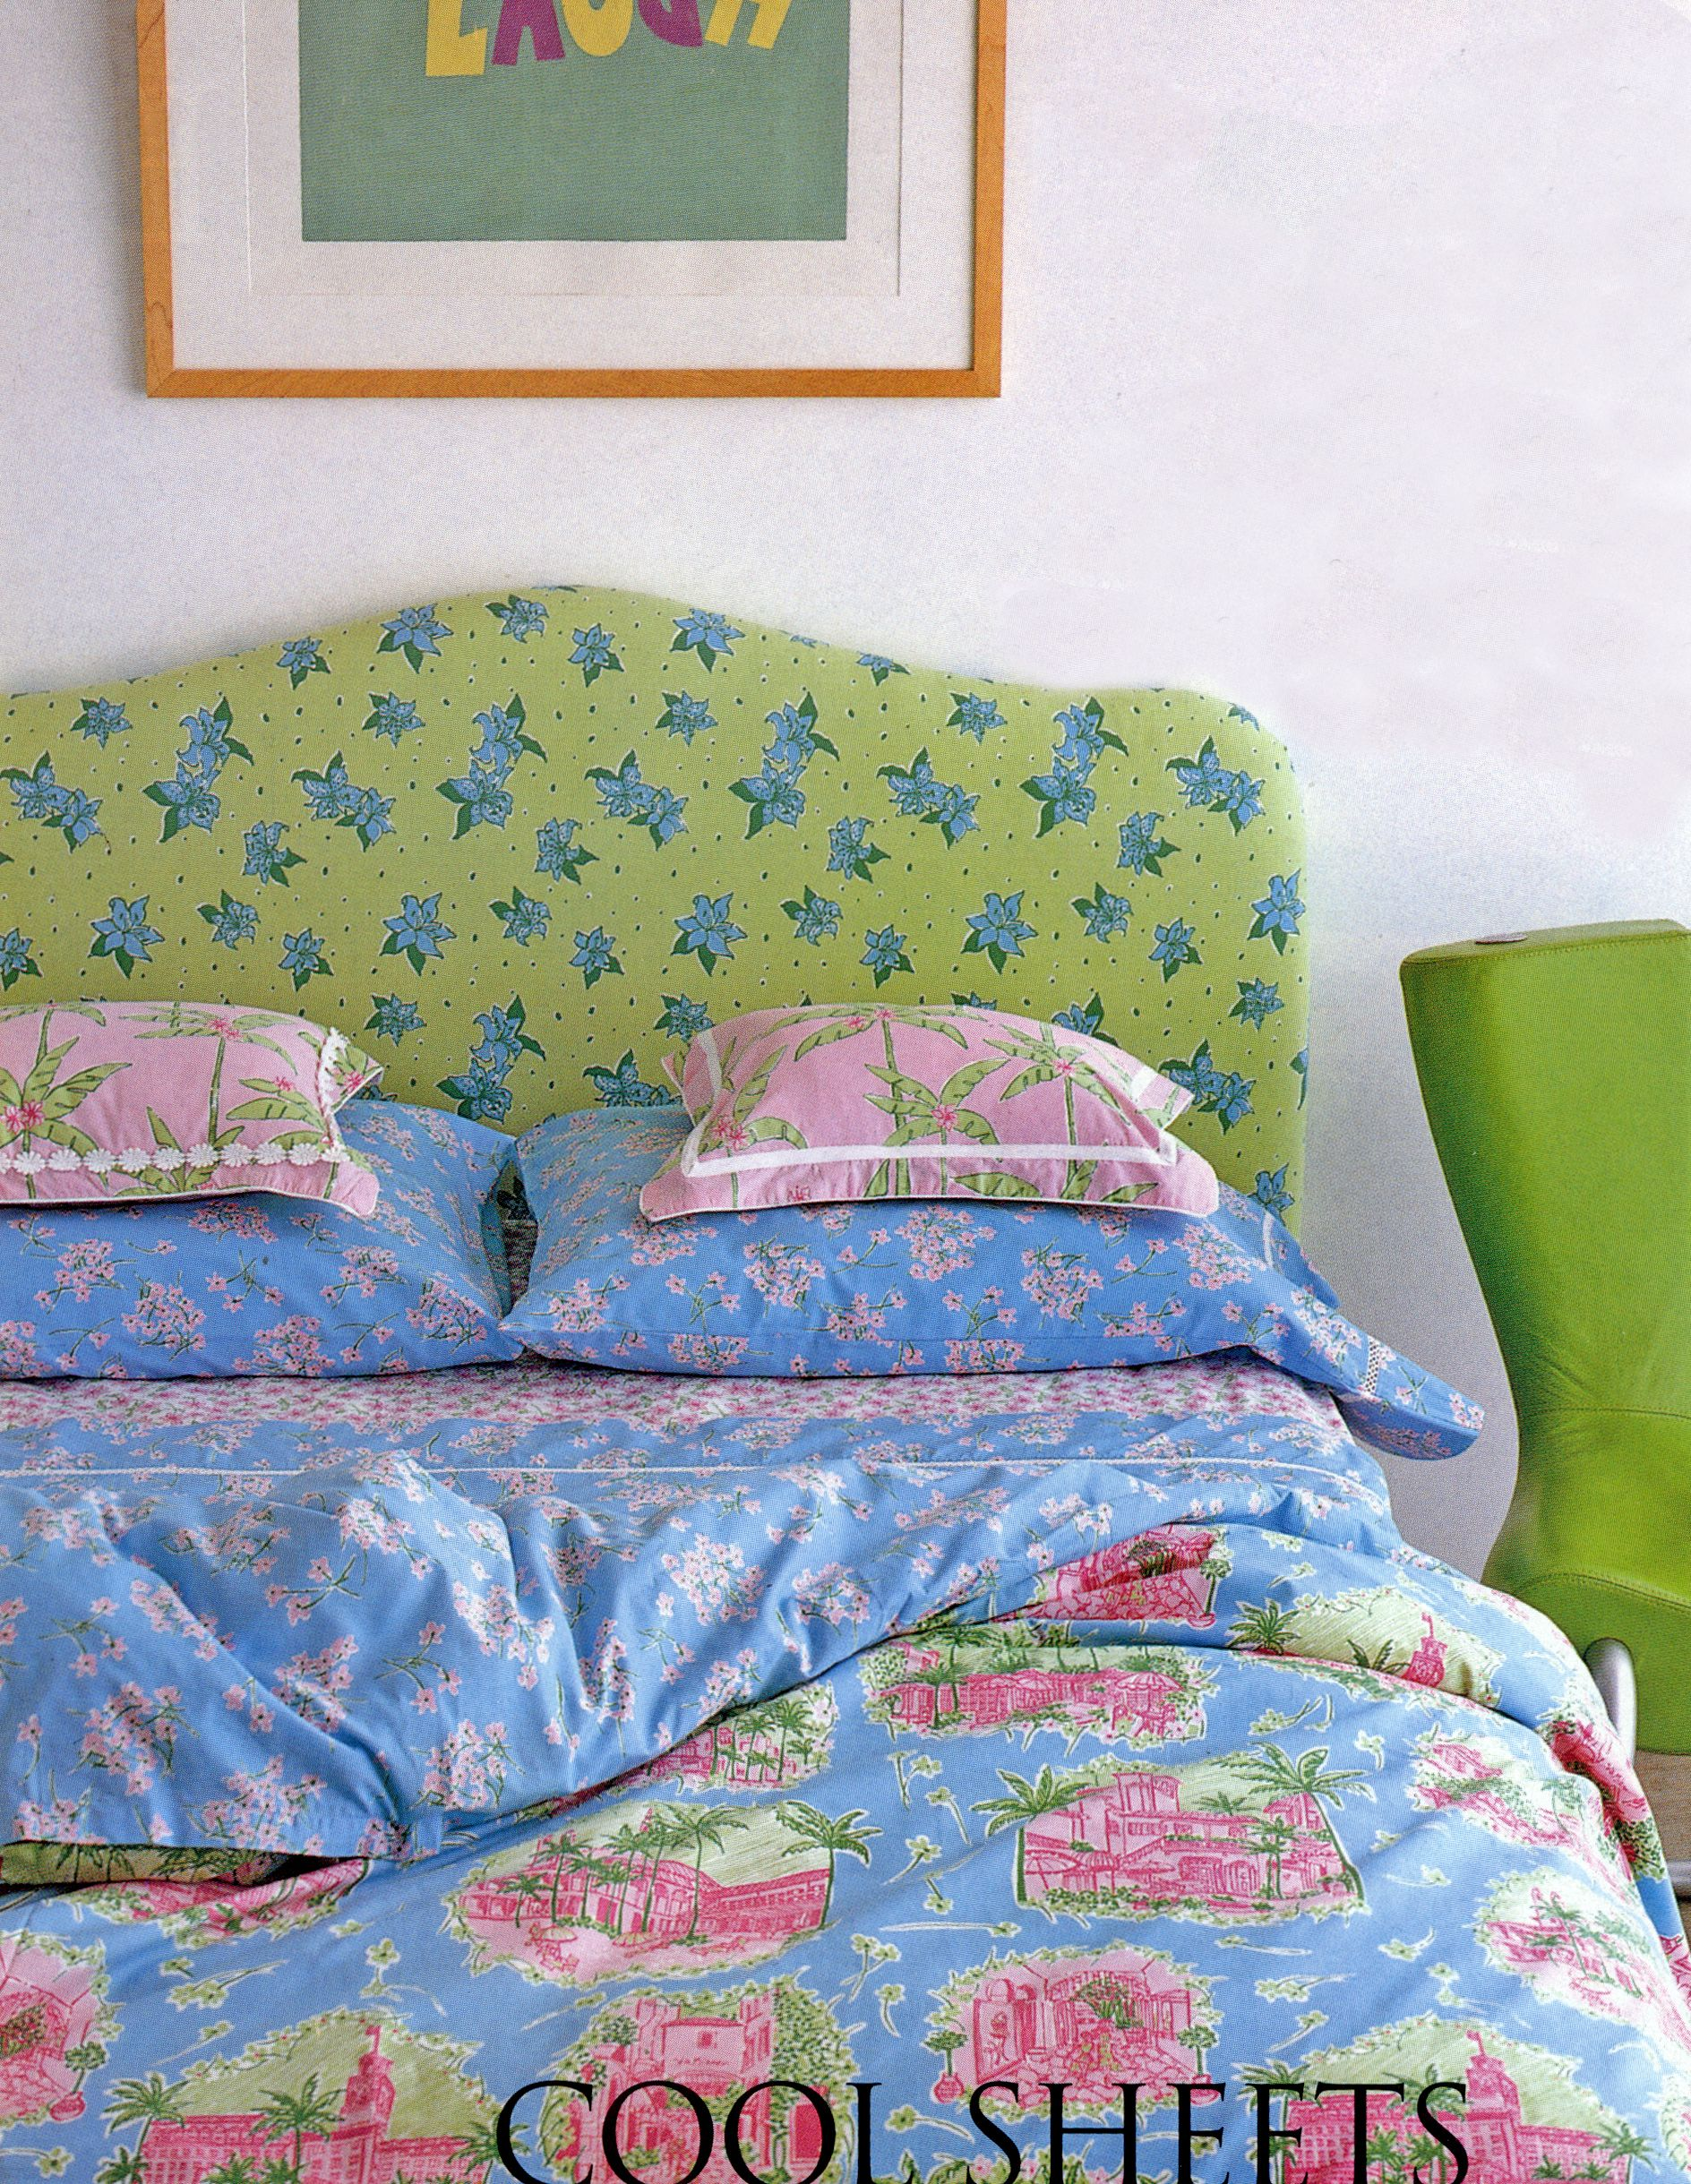 Lilly Pulitzer S Bedding By Dan River Palm Beach Toile